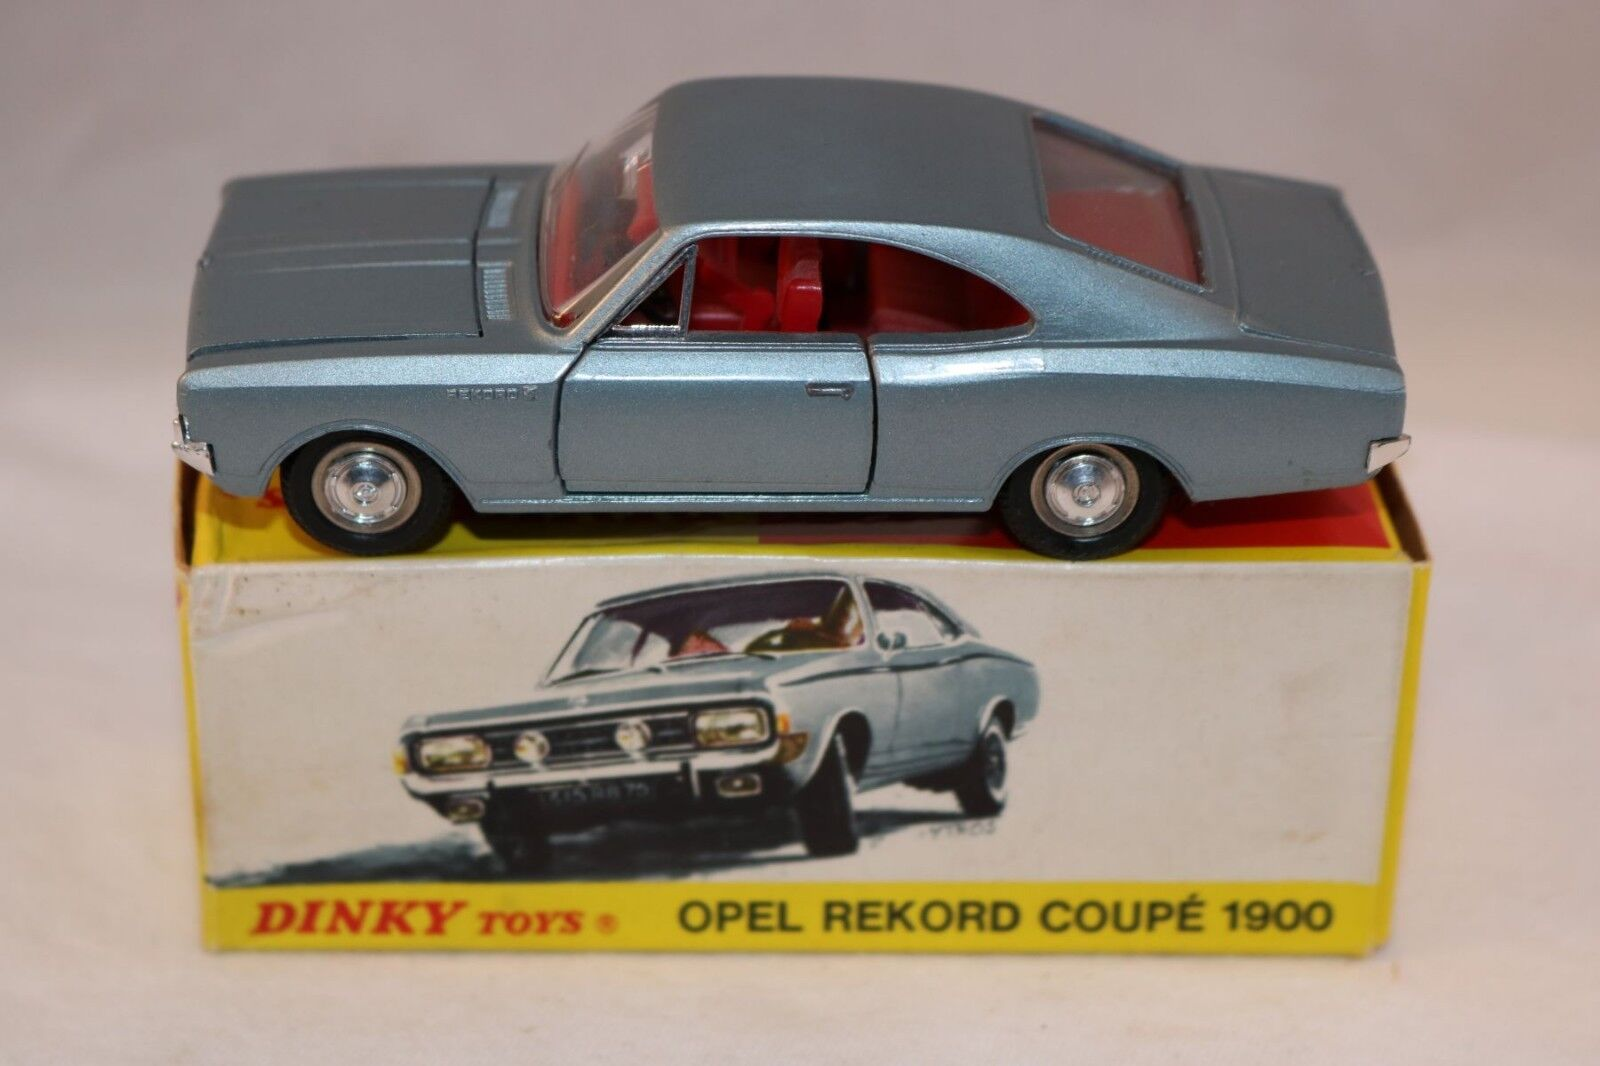 Dinky Toys 1405  D Opel Rekord Coupe 1900 VERY RARE GERhomme EXPORT ISSUE VNMIB  bienvenue à l'ordre